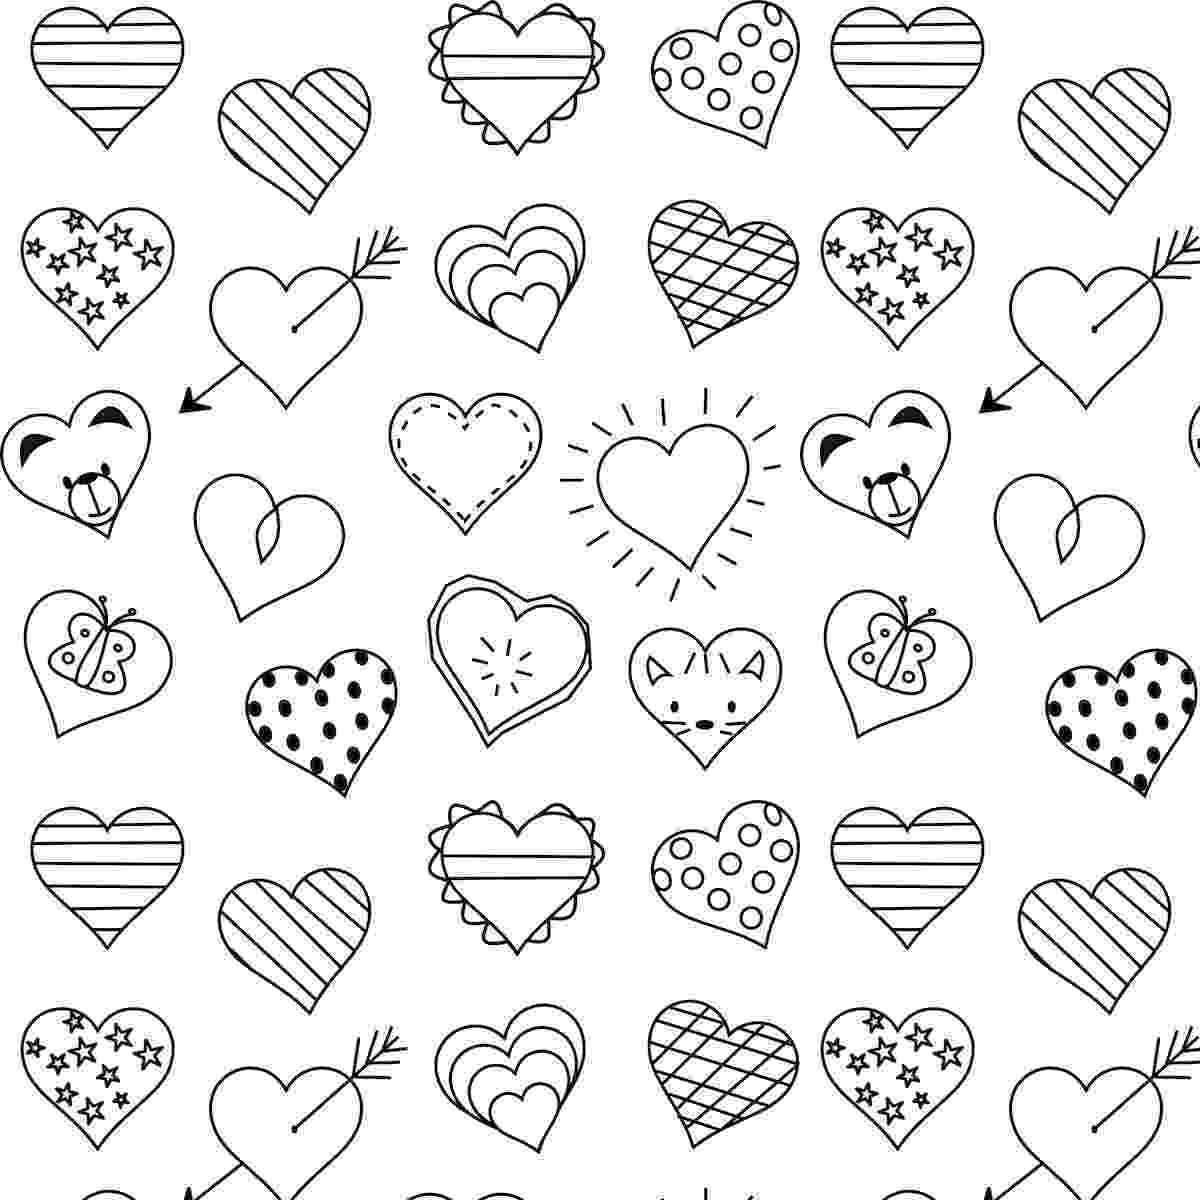 free coloring pages hearts free printable heart coloring page ausdruckbare pages hearts coloring free